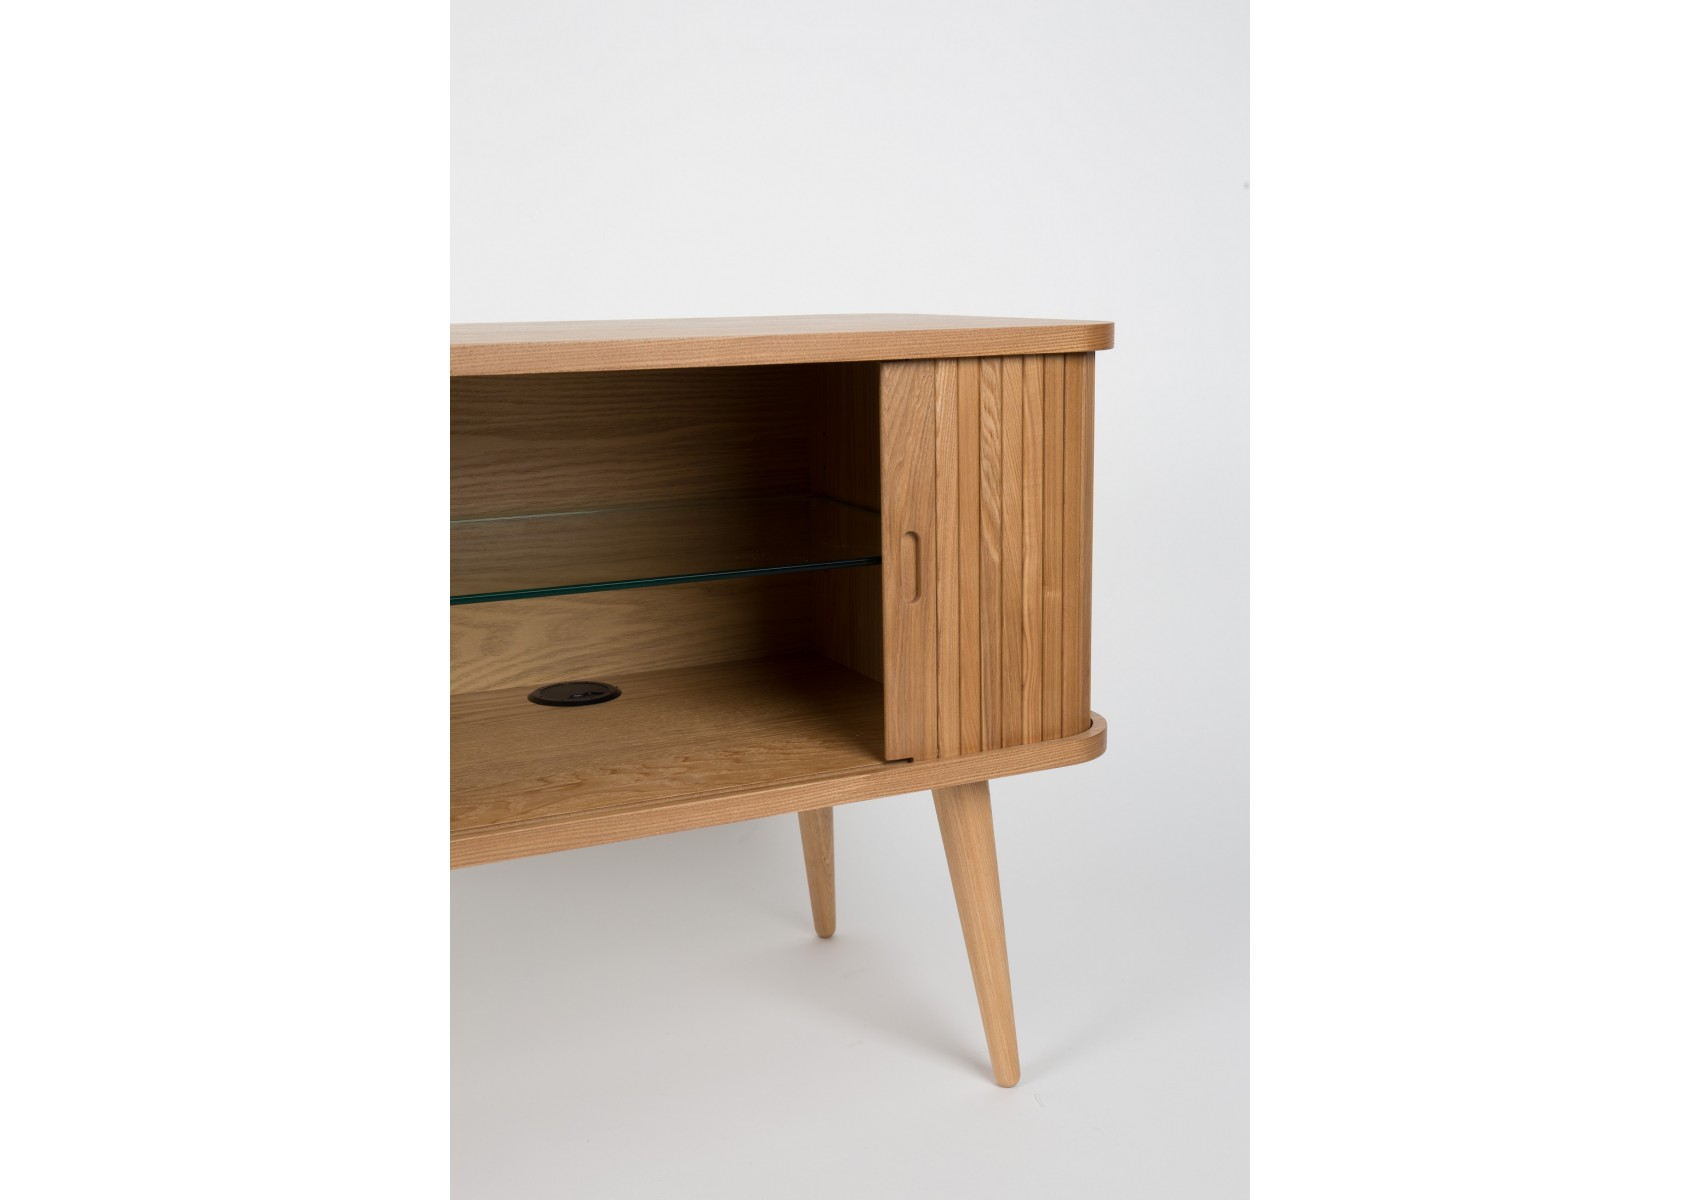 Buffet en bois au design scandinave sideboard barbier par - Meuble de barbier ...